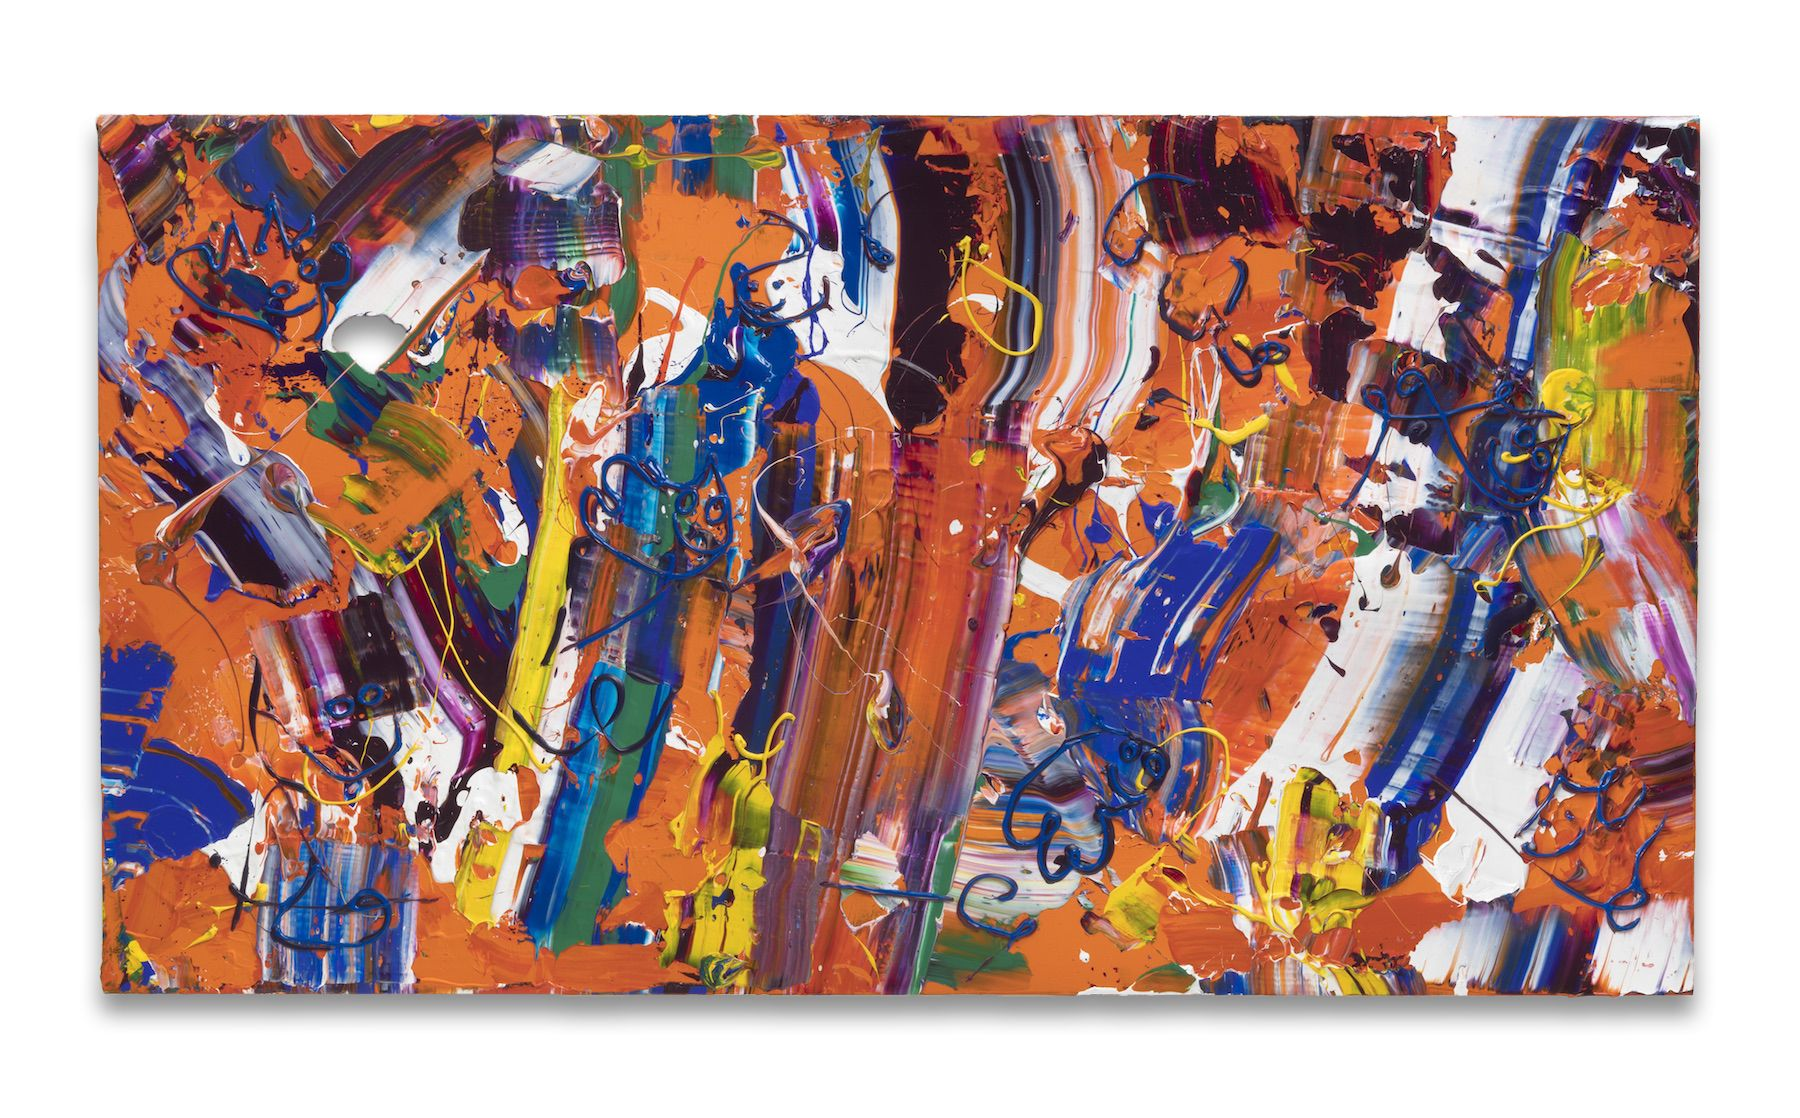 First Place, 2018,Acrylic on linen,44 x 80 inches,111.8 x 20.3 cm, MMG#30375